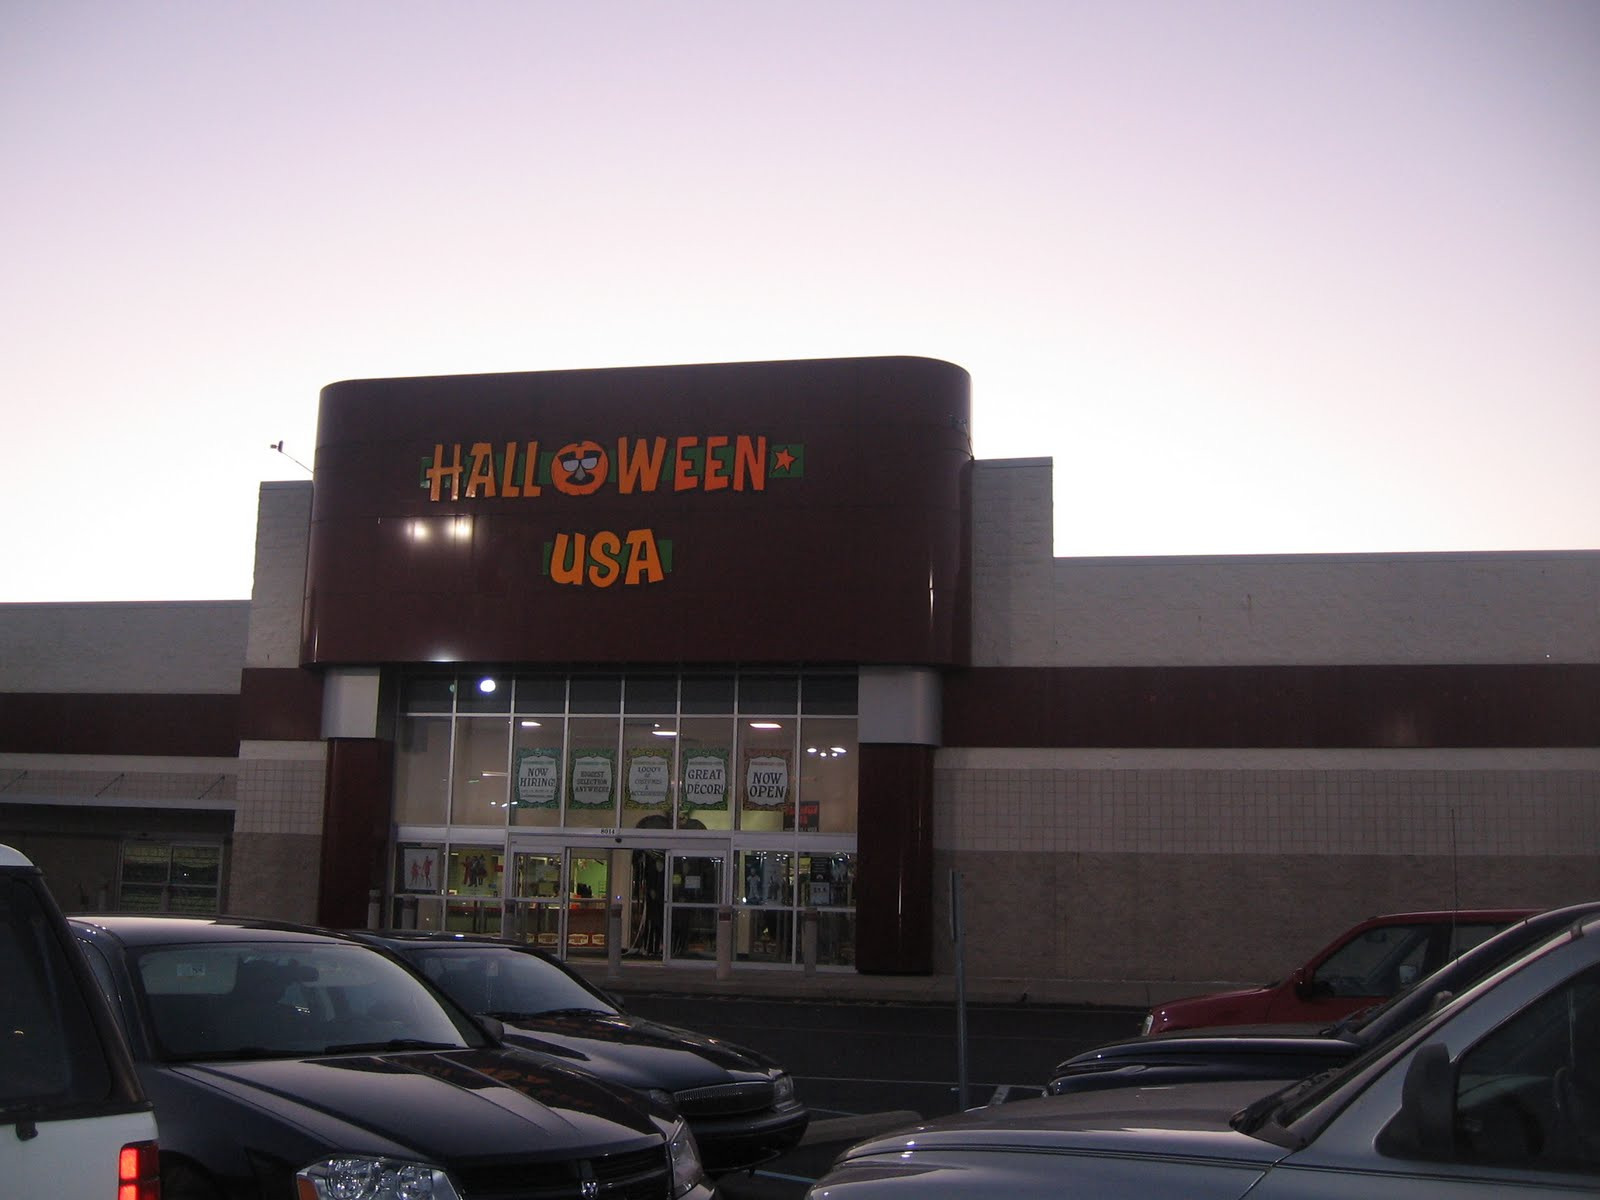 most ubiquitous pop ups capitalizing on the particularly high vacancies in suburban strip malls costumes for halloween tree trimming for christmas